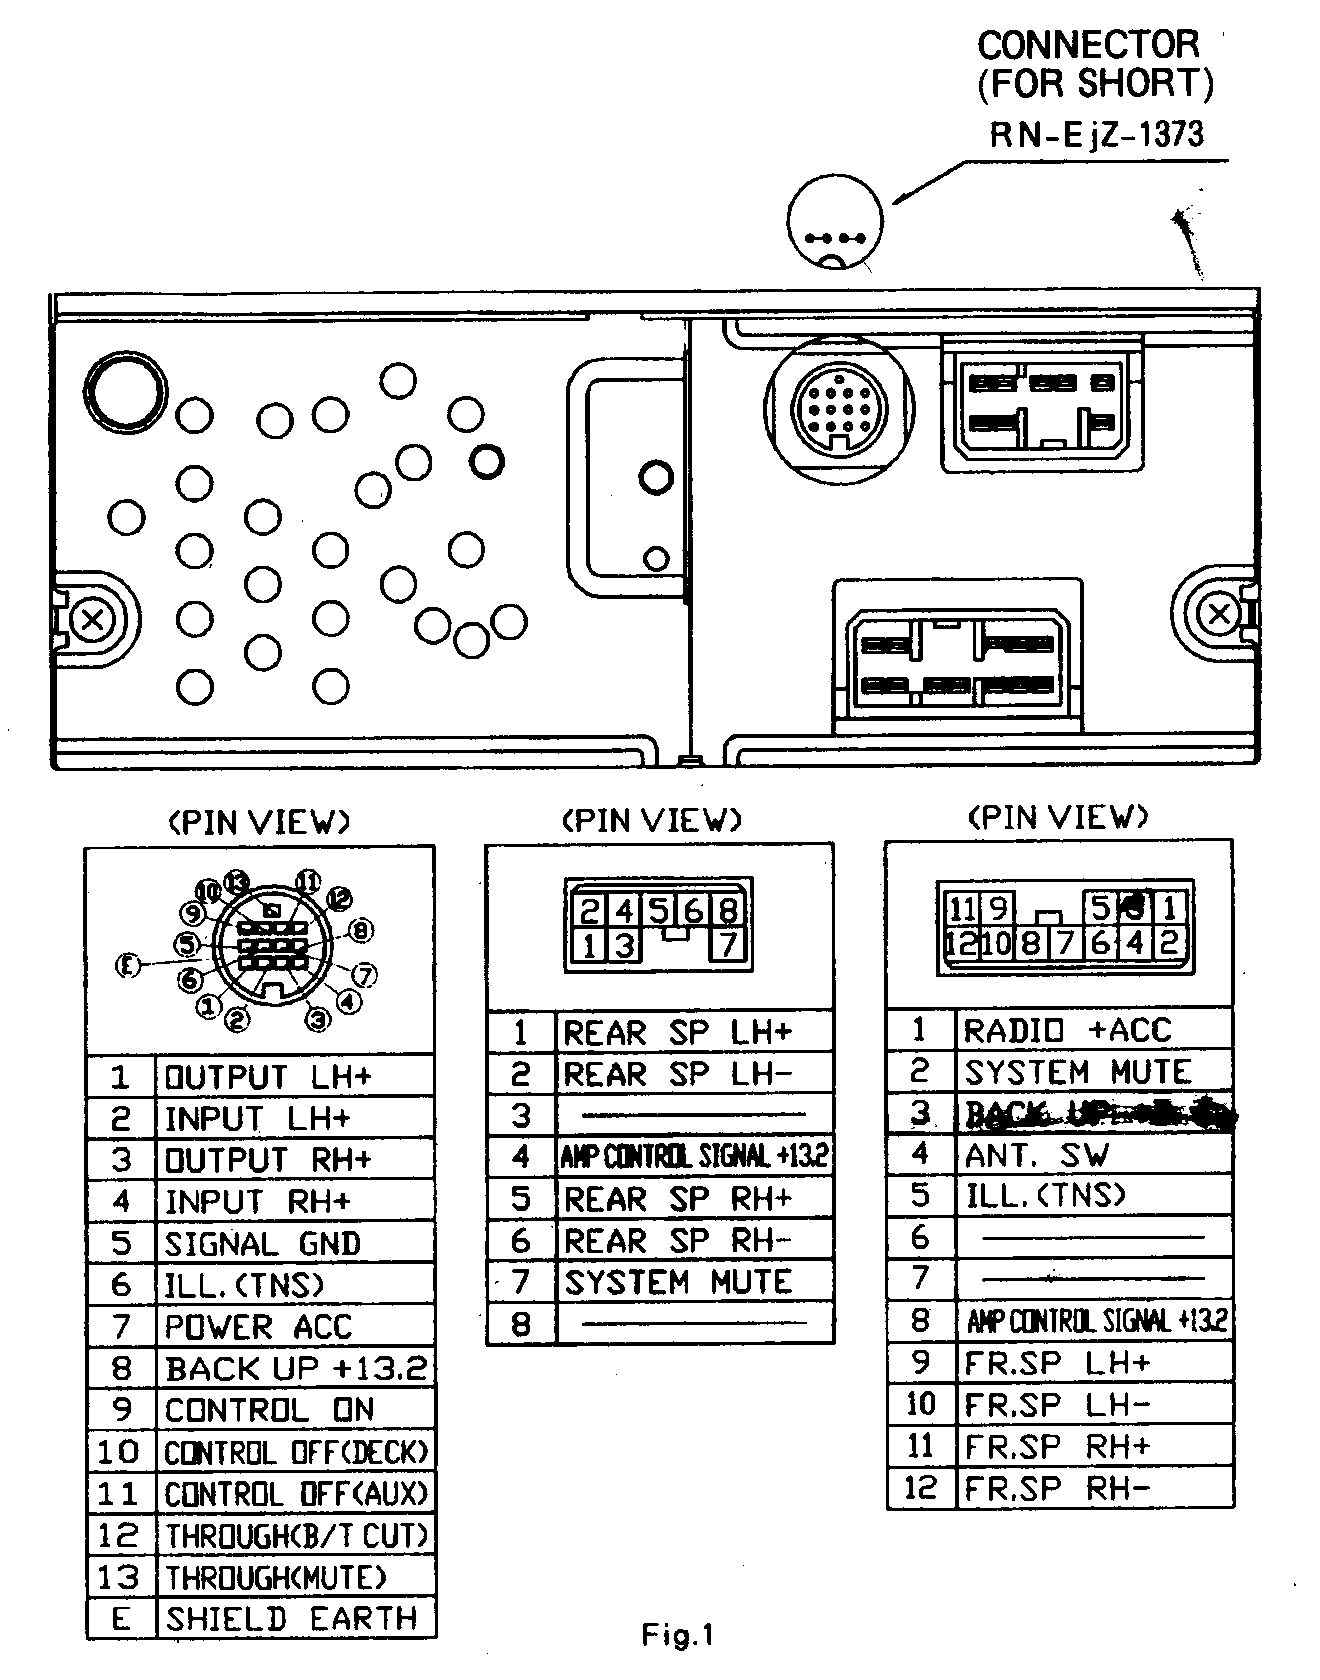 wiring diagram for car radio the wiring diagram mazda car radio stereo audio wiring diagram autoradio connector wiring diagram